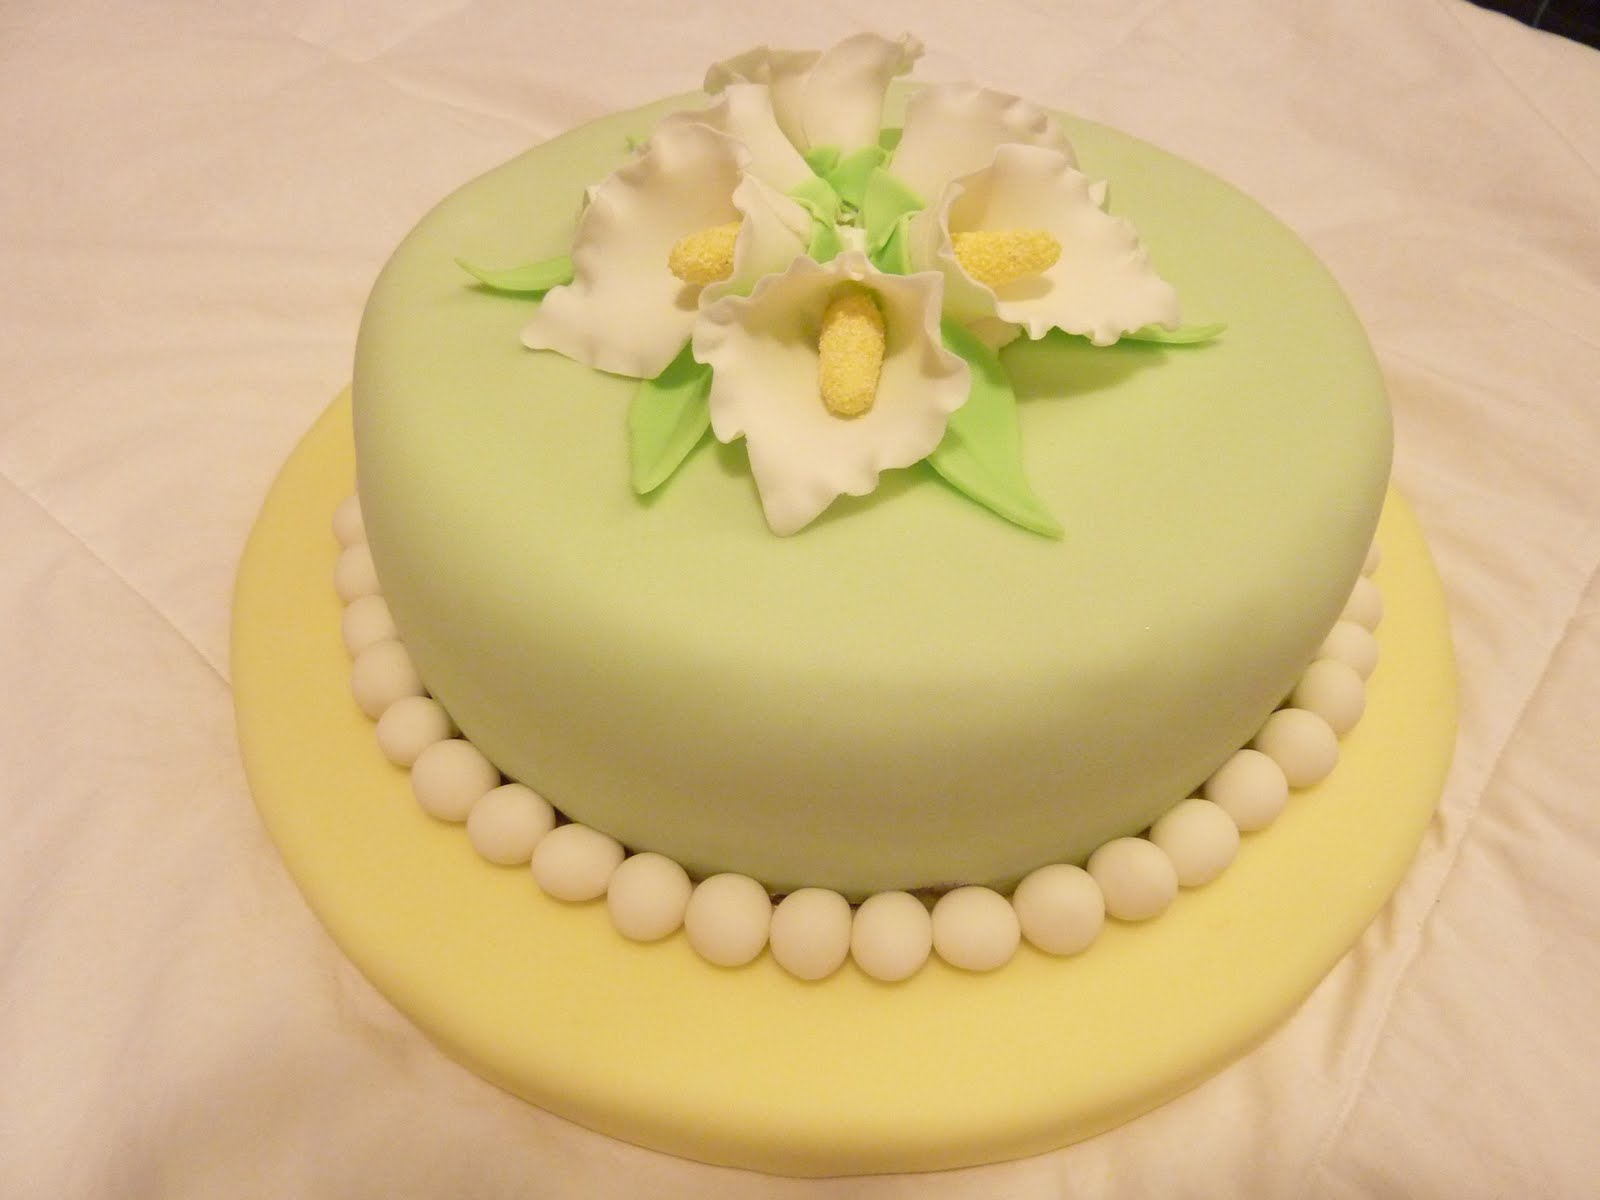 Cake Decorating Classes Michaels Schedule : Our Sweet Obsession: Gum Paste and Fondant Class Completed!!!